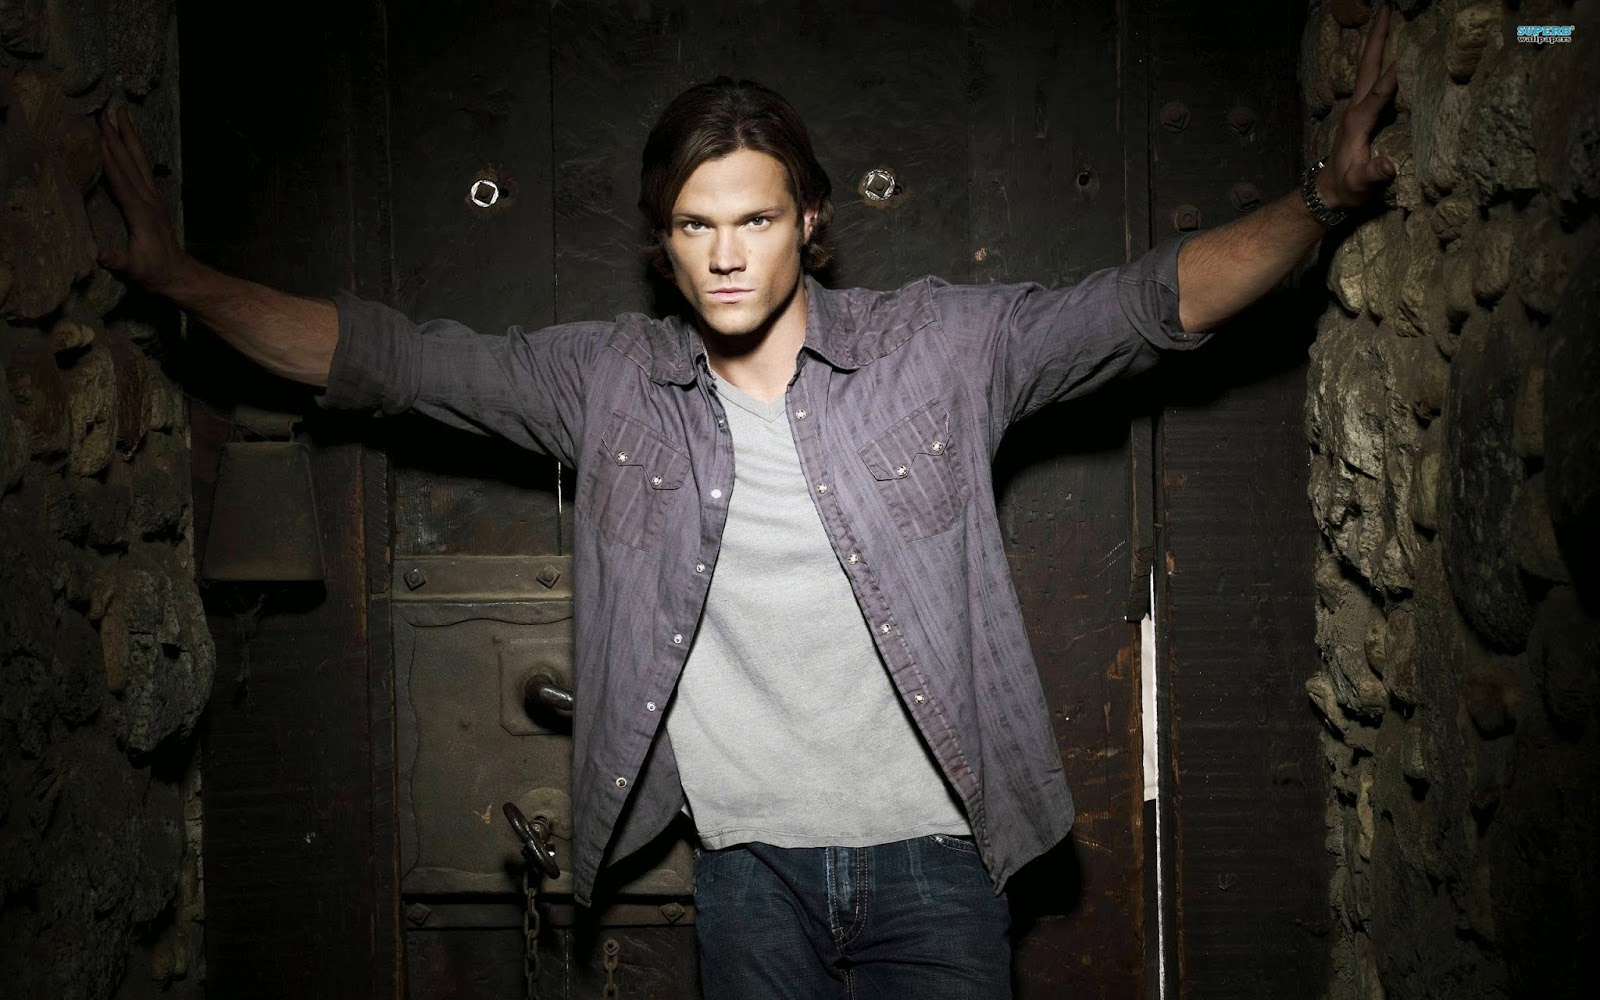 Jared padalecki quotes - 4 There Are Certain Forums Where You Re Obviously Not Going To Please Everybody I Think For The Most Part It Goes To The Producers And The People Who